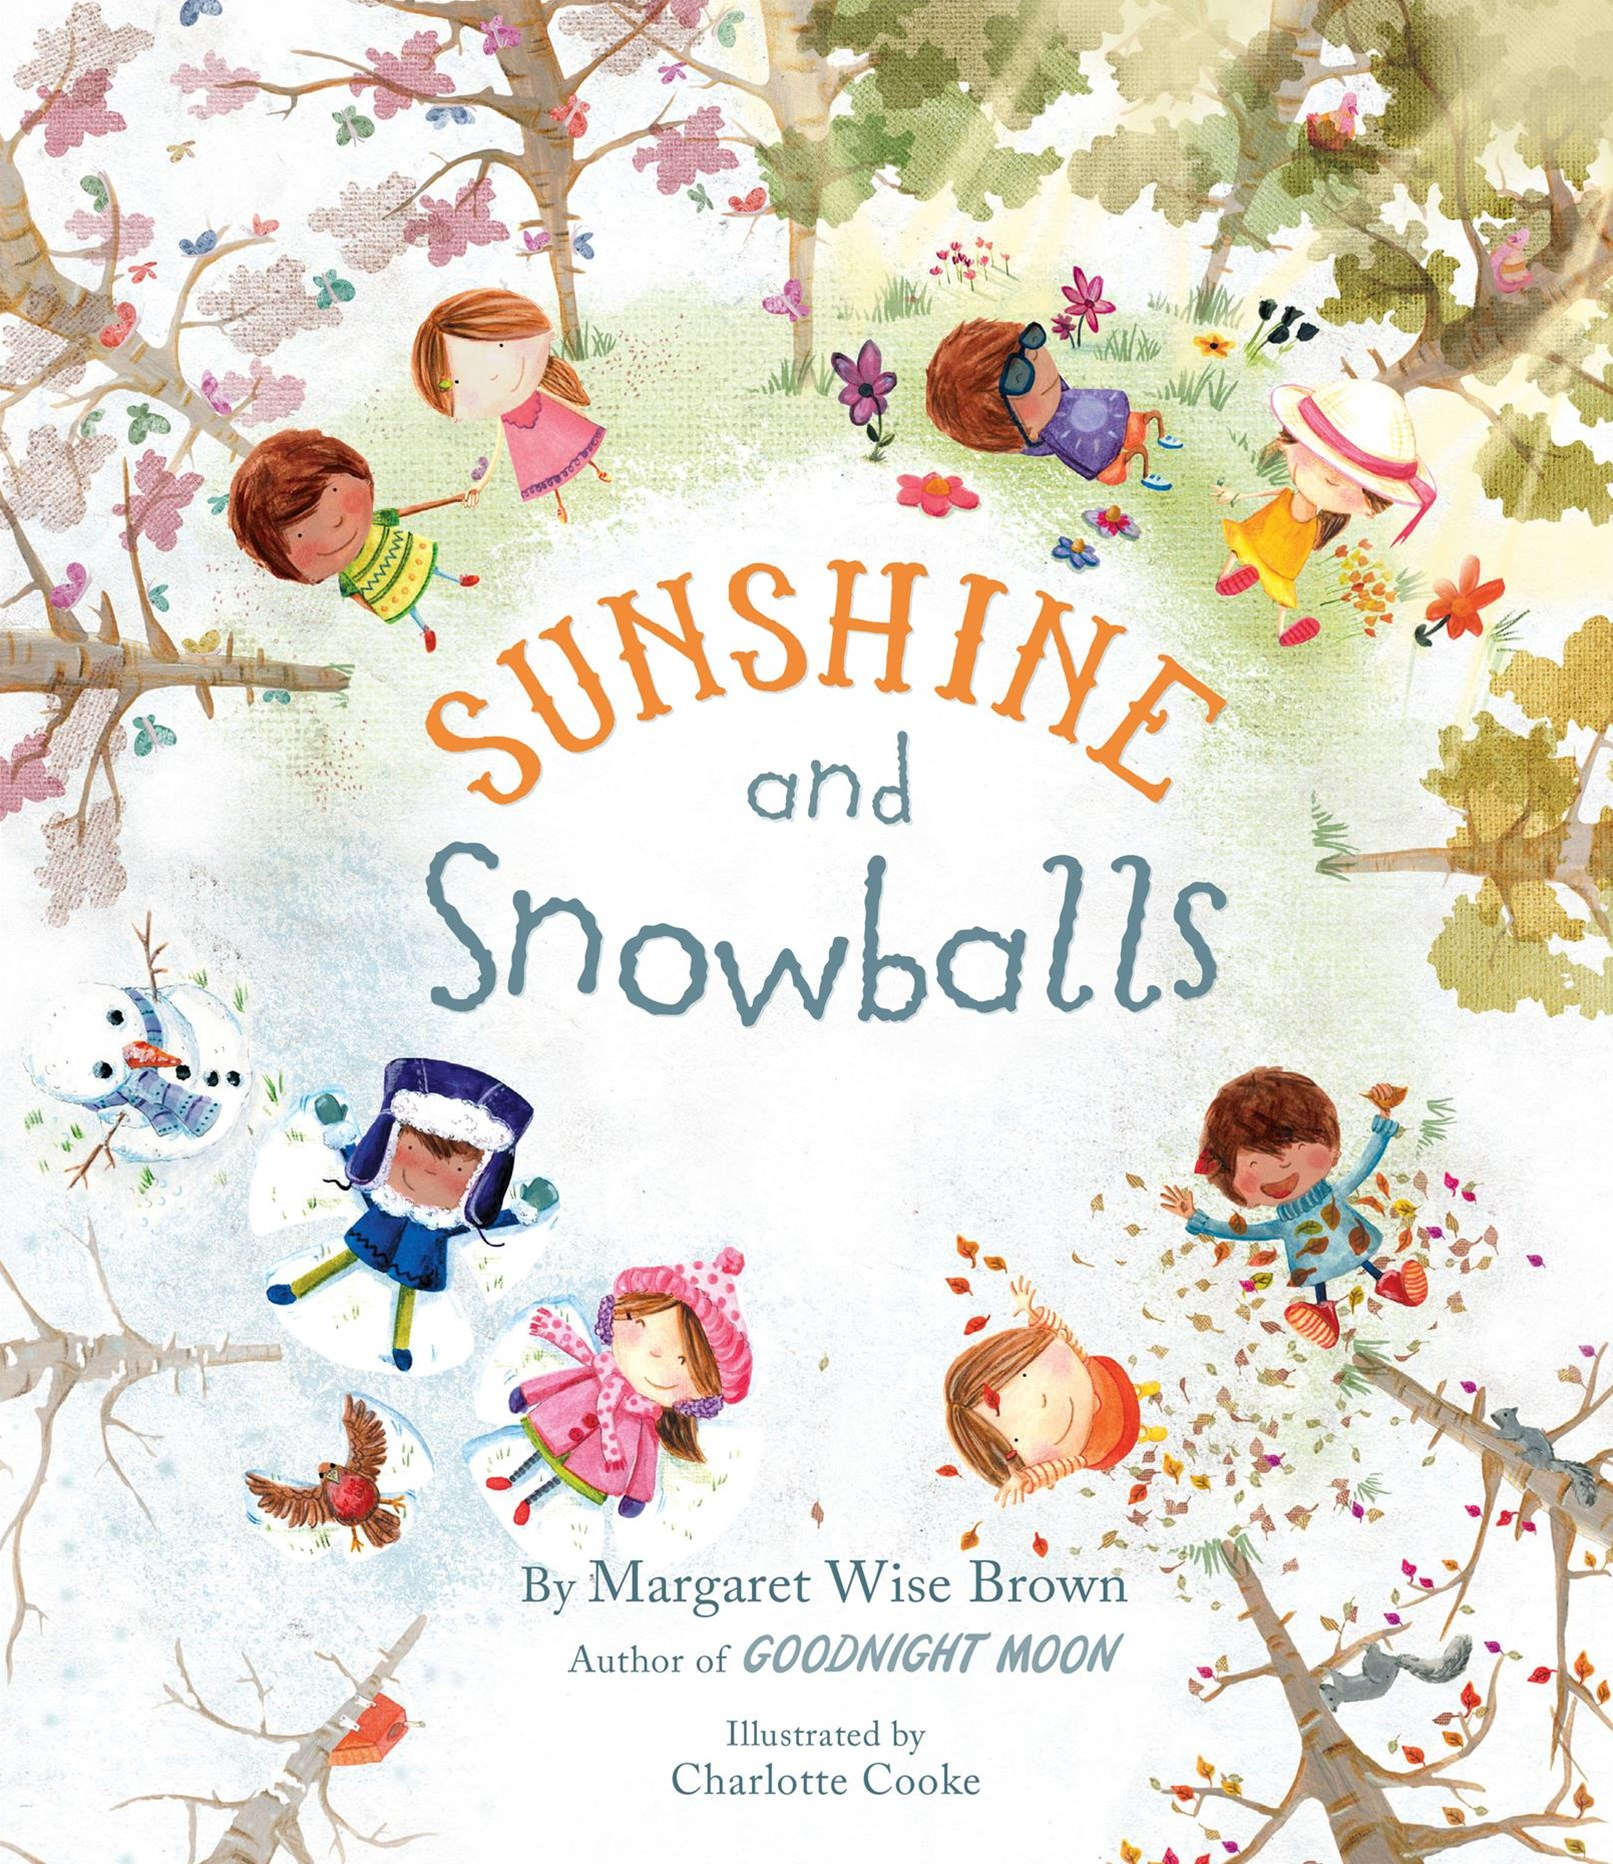 Sunshine and Snowballs